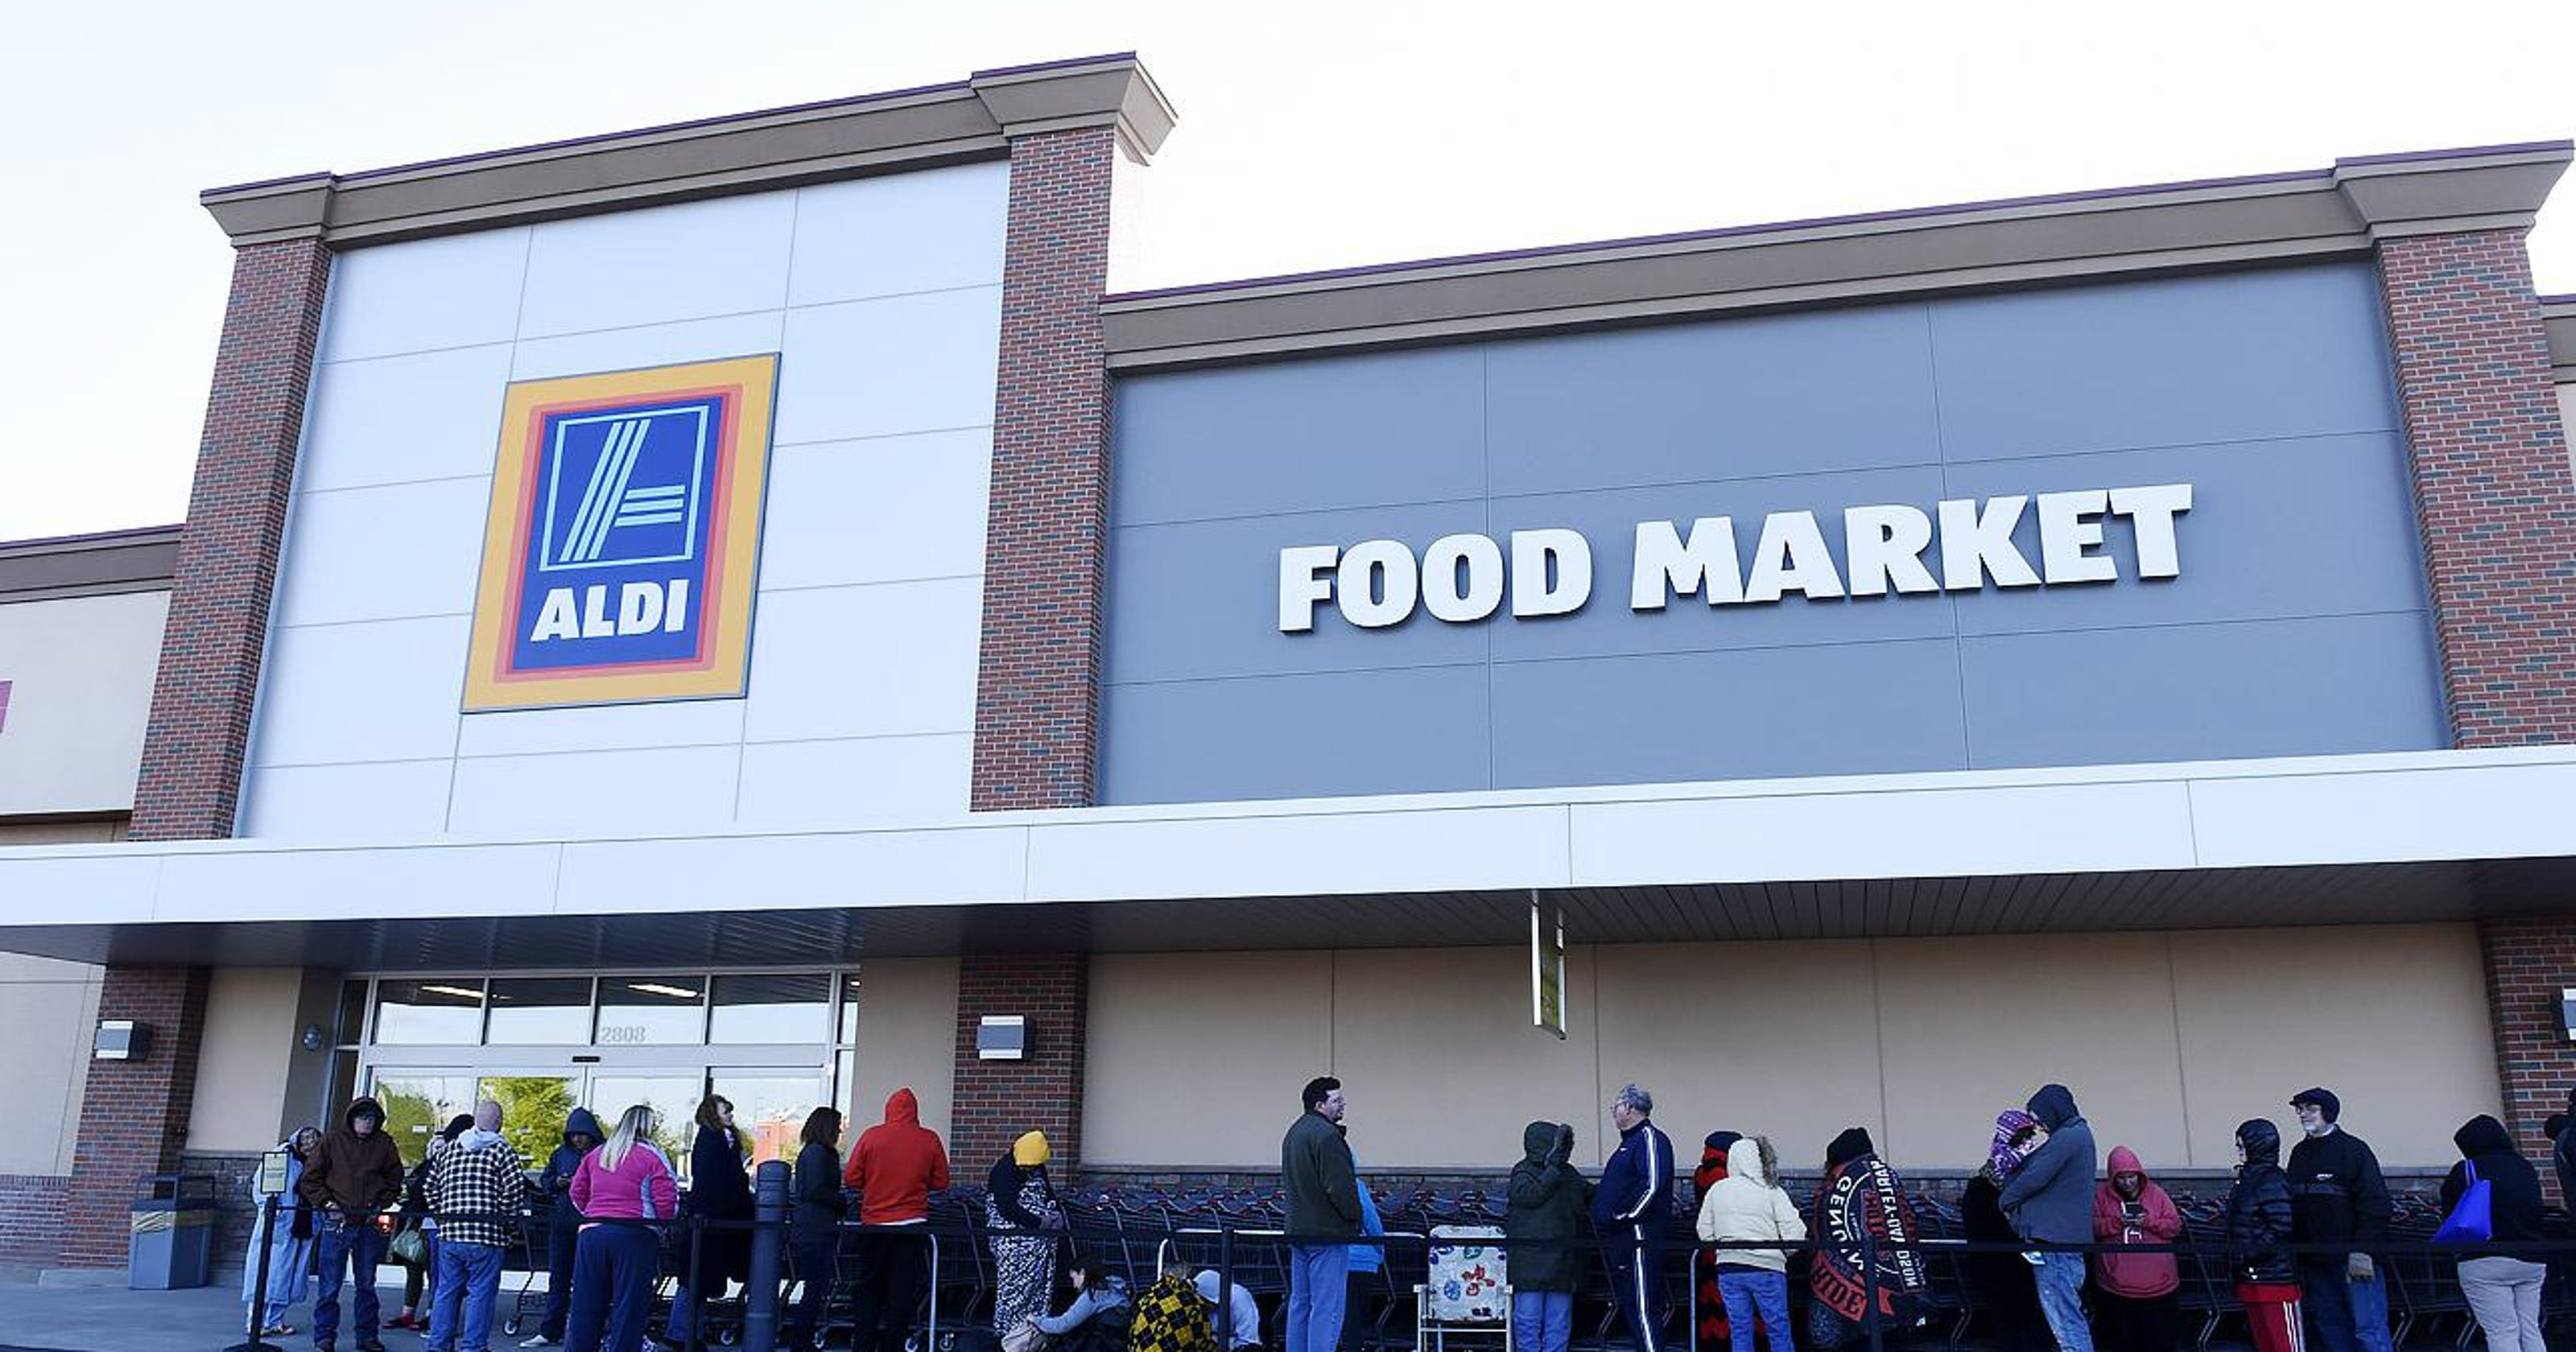 Love Aldi? Now you can get it delivered via Instacart